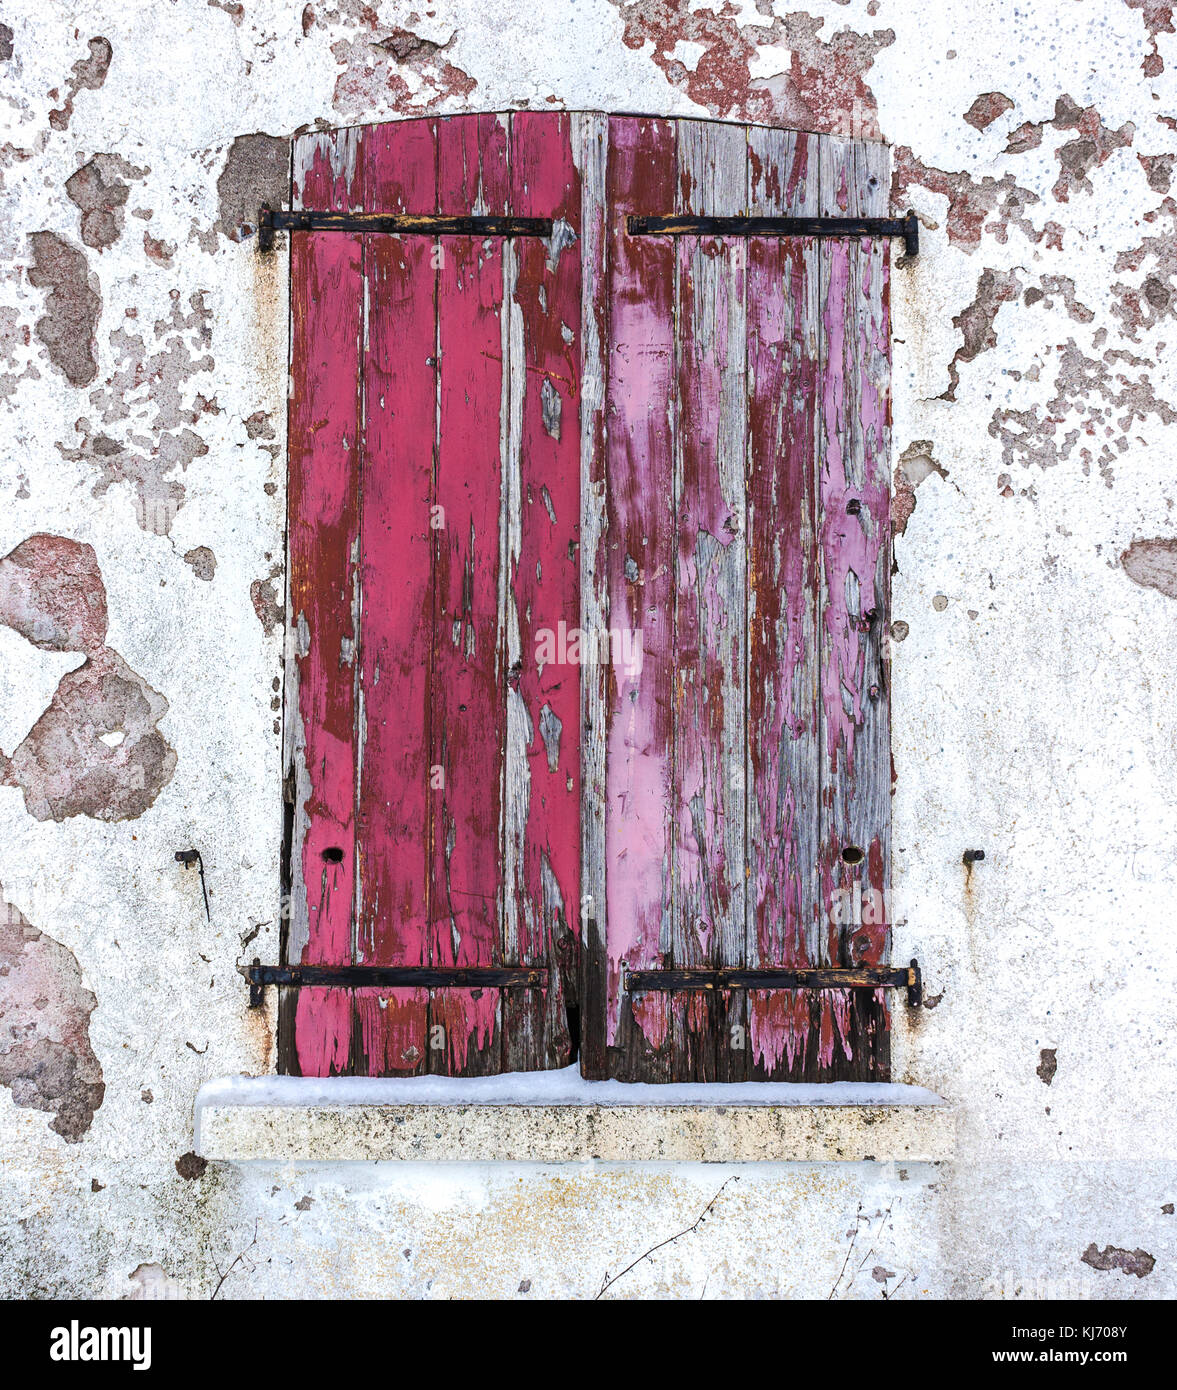 Close-up of an old window with closed red worn wooden shutters on a white decrepit wall in winter. - Stock Image